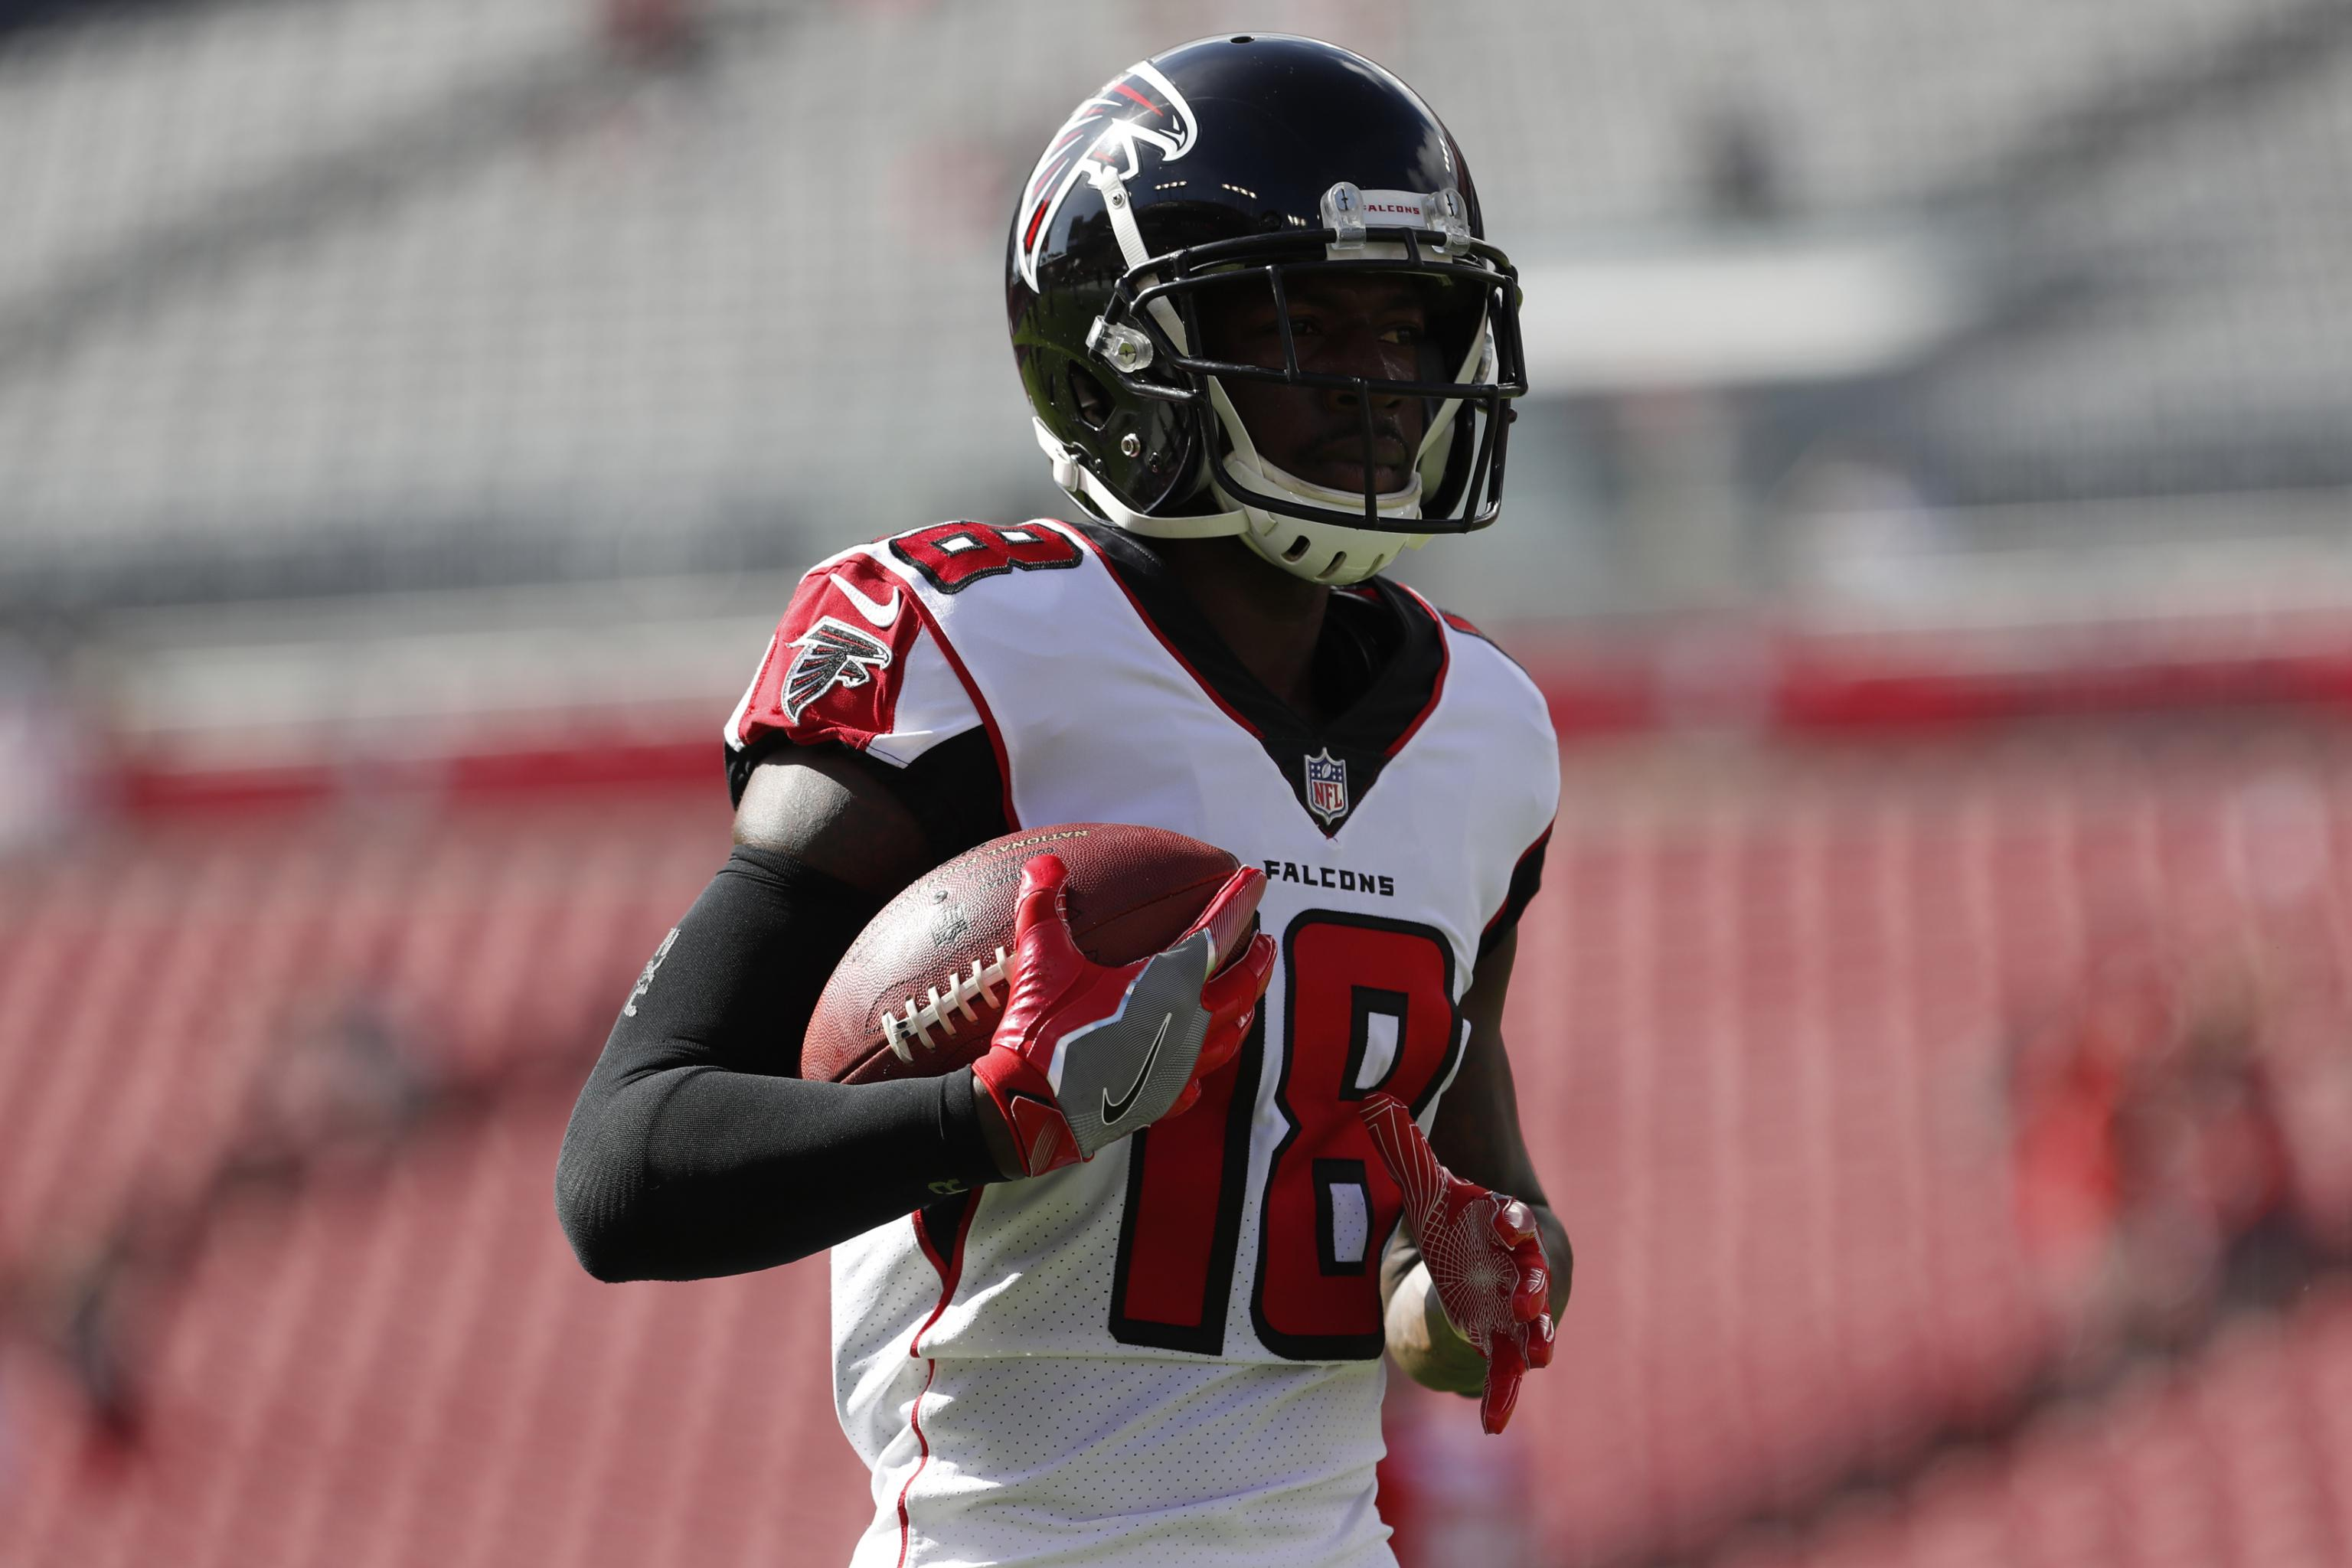 Falcons Calvin Ridley Expects To Be Elite This Year Wants At Least 1 000 Yards Bleacher Report Latest News Videos And Highlights